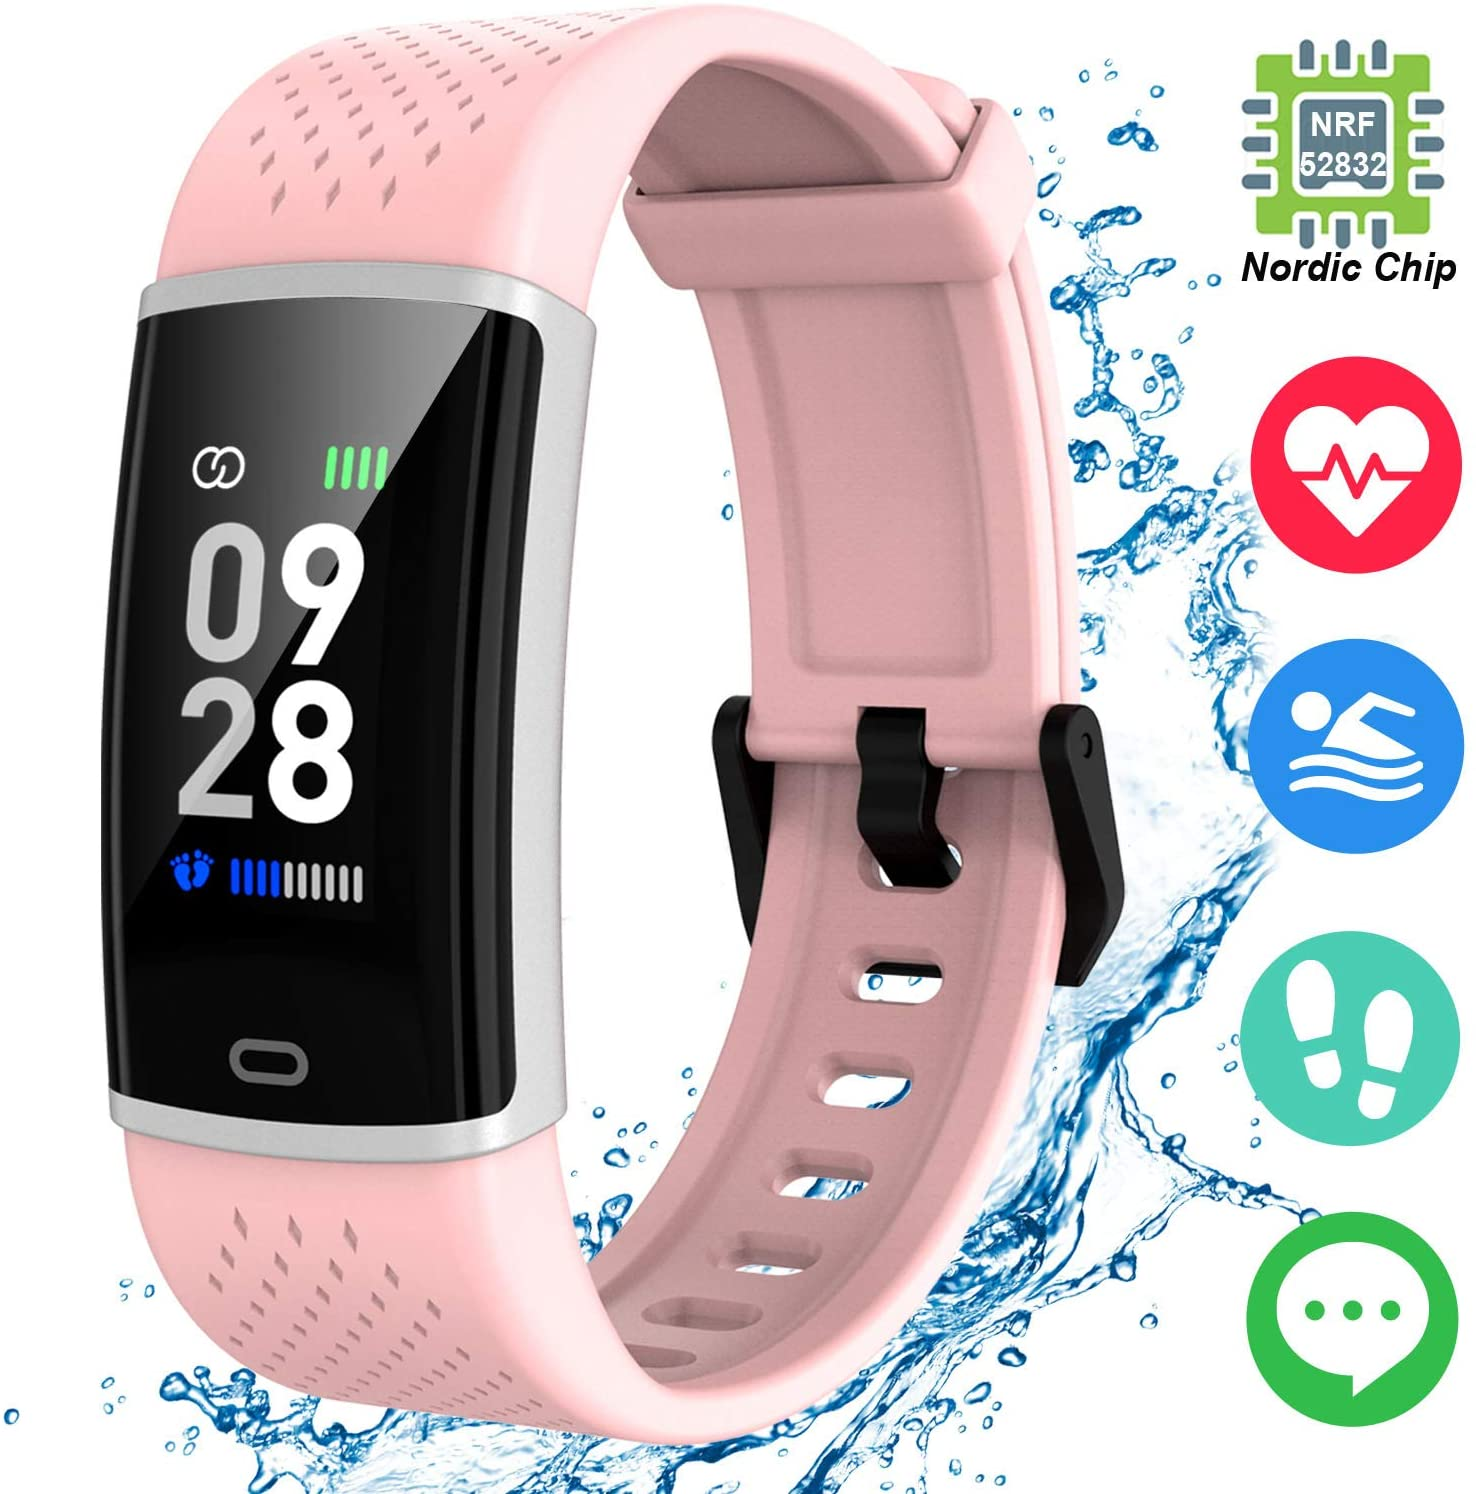 Jogfit Fitness Tracker with Heart Rate Monitor Waterproof Activity Tracker Smartwatch, Health Sport Watch with Calorie Counter, Sleep Tracker, Step Pedometer for Men Women Kids